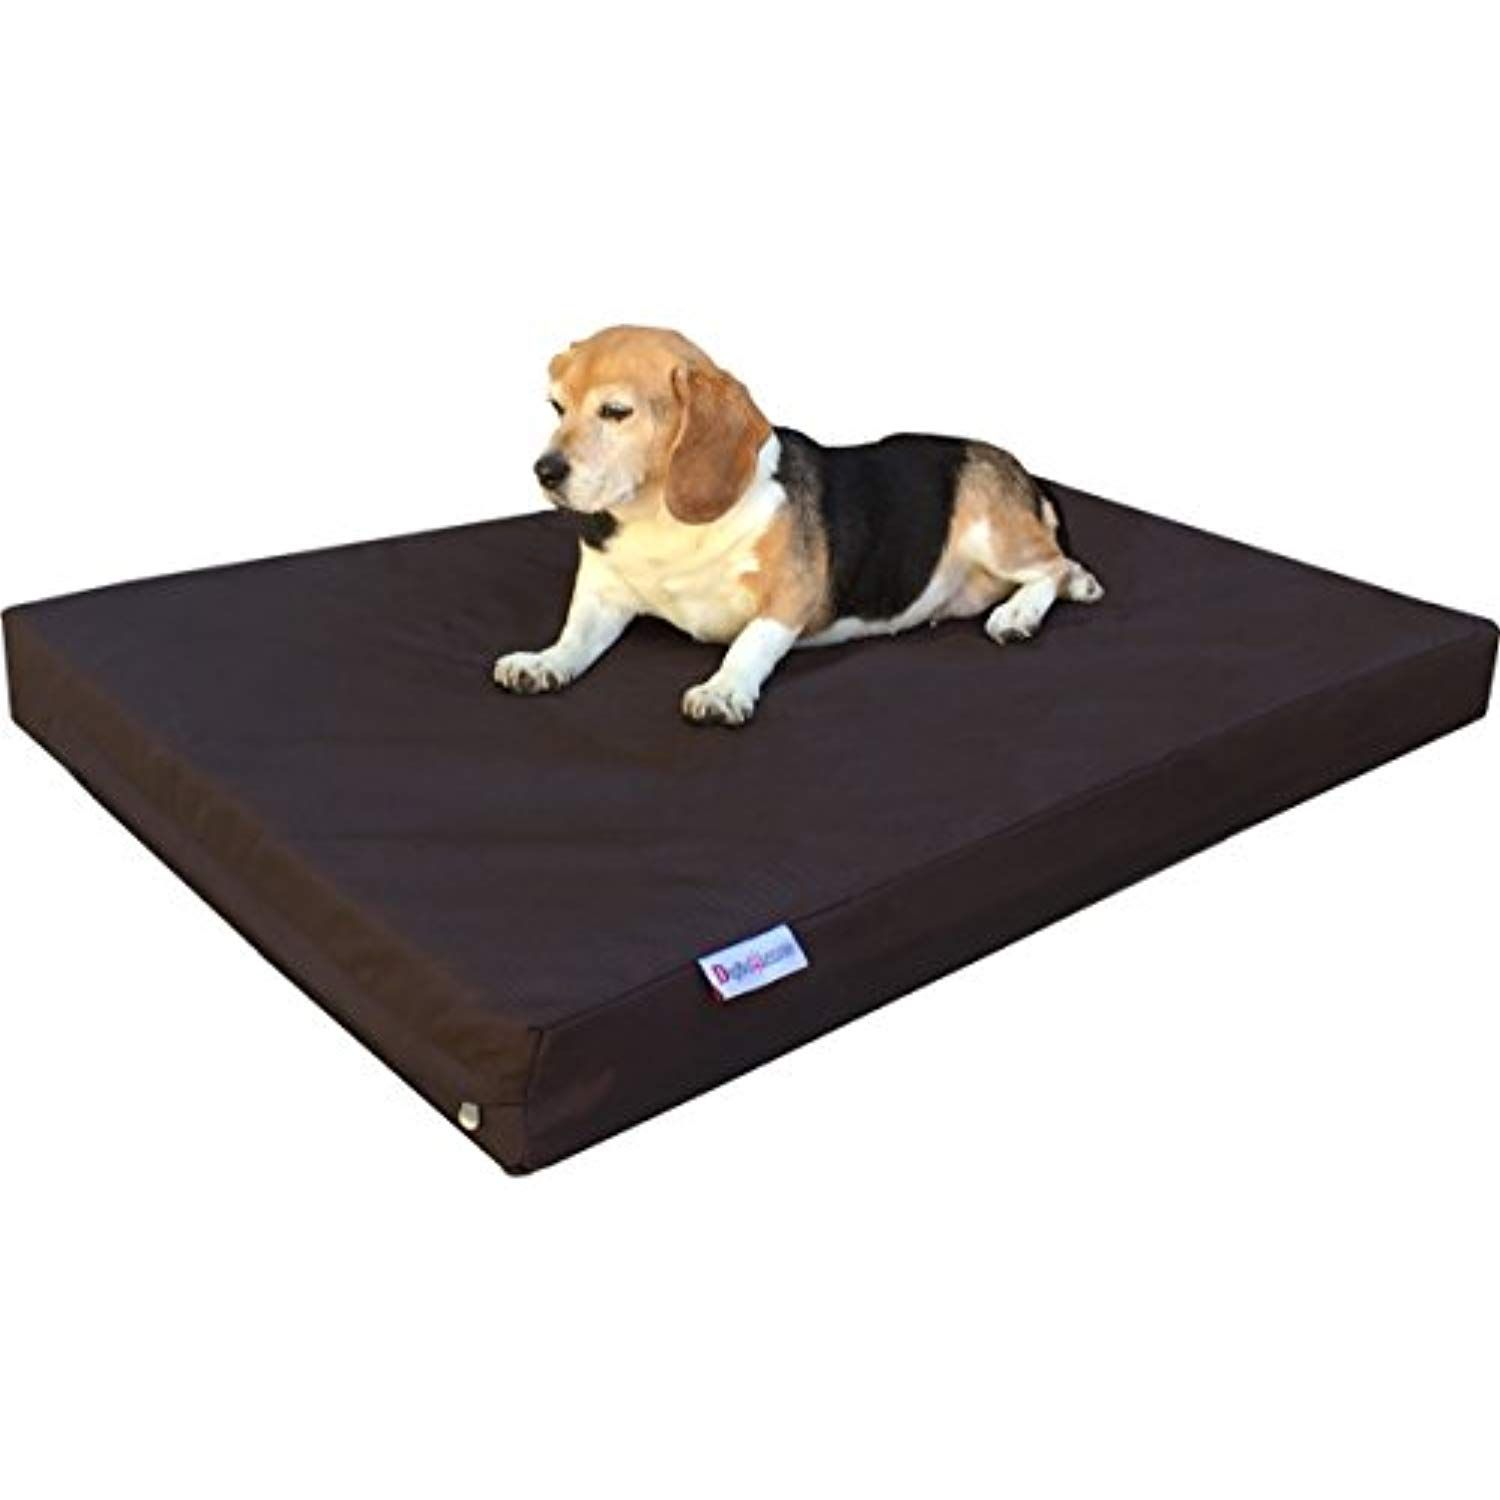 Dogbed4less Orthopedic Dog Bed With Memory Foam For Medium Large Pet Waterproof Liner With Strong Ballistic Nyl Memory Foam Dog Bed Orthopedic Dog Bed Dog Bed